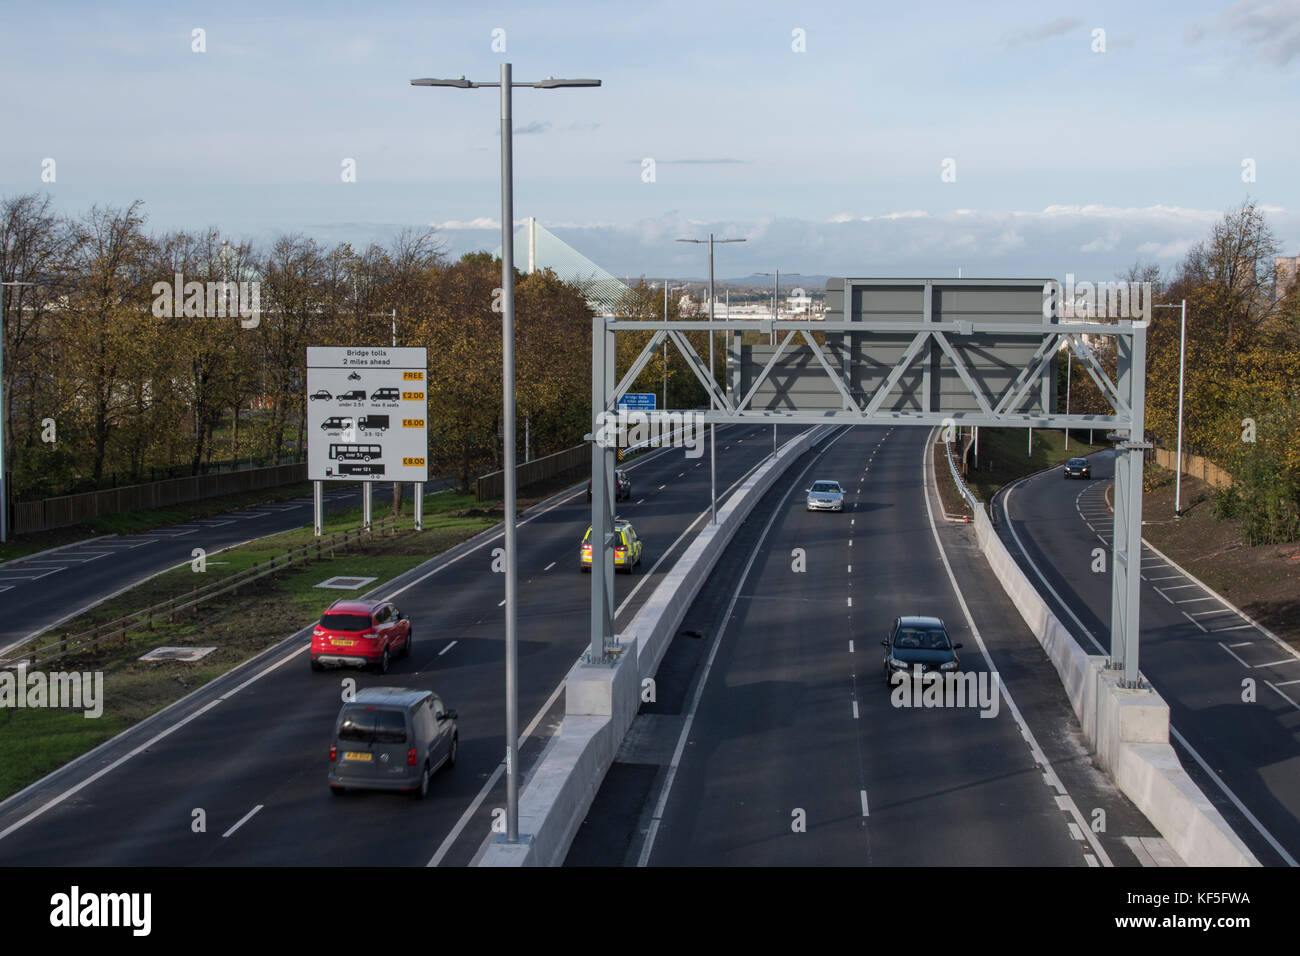 Mersey Gateway toll bridge approach road with traffic heading to and from the toll bridge across the River Mersey - Stock Image